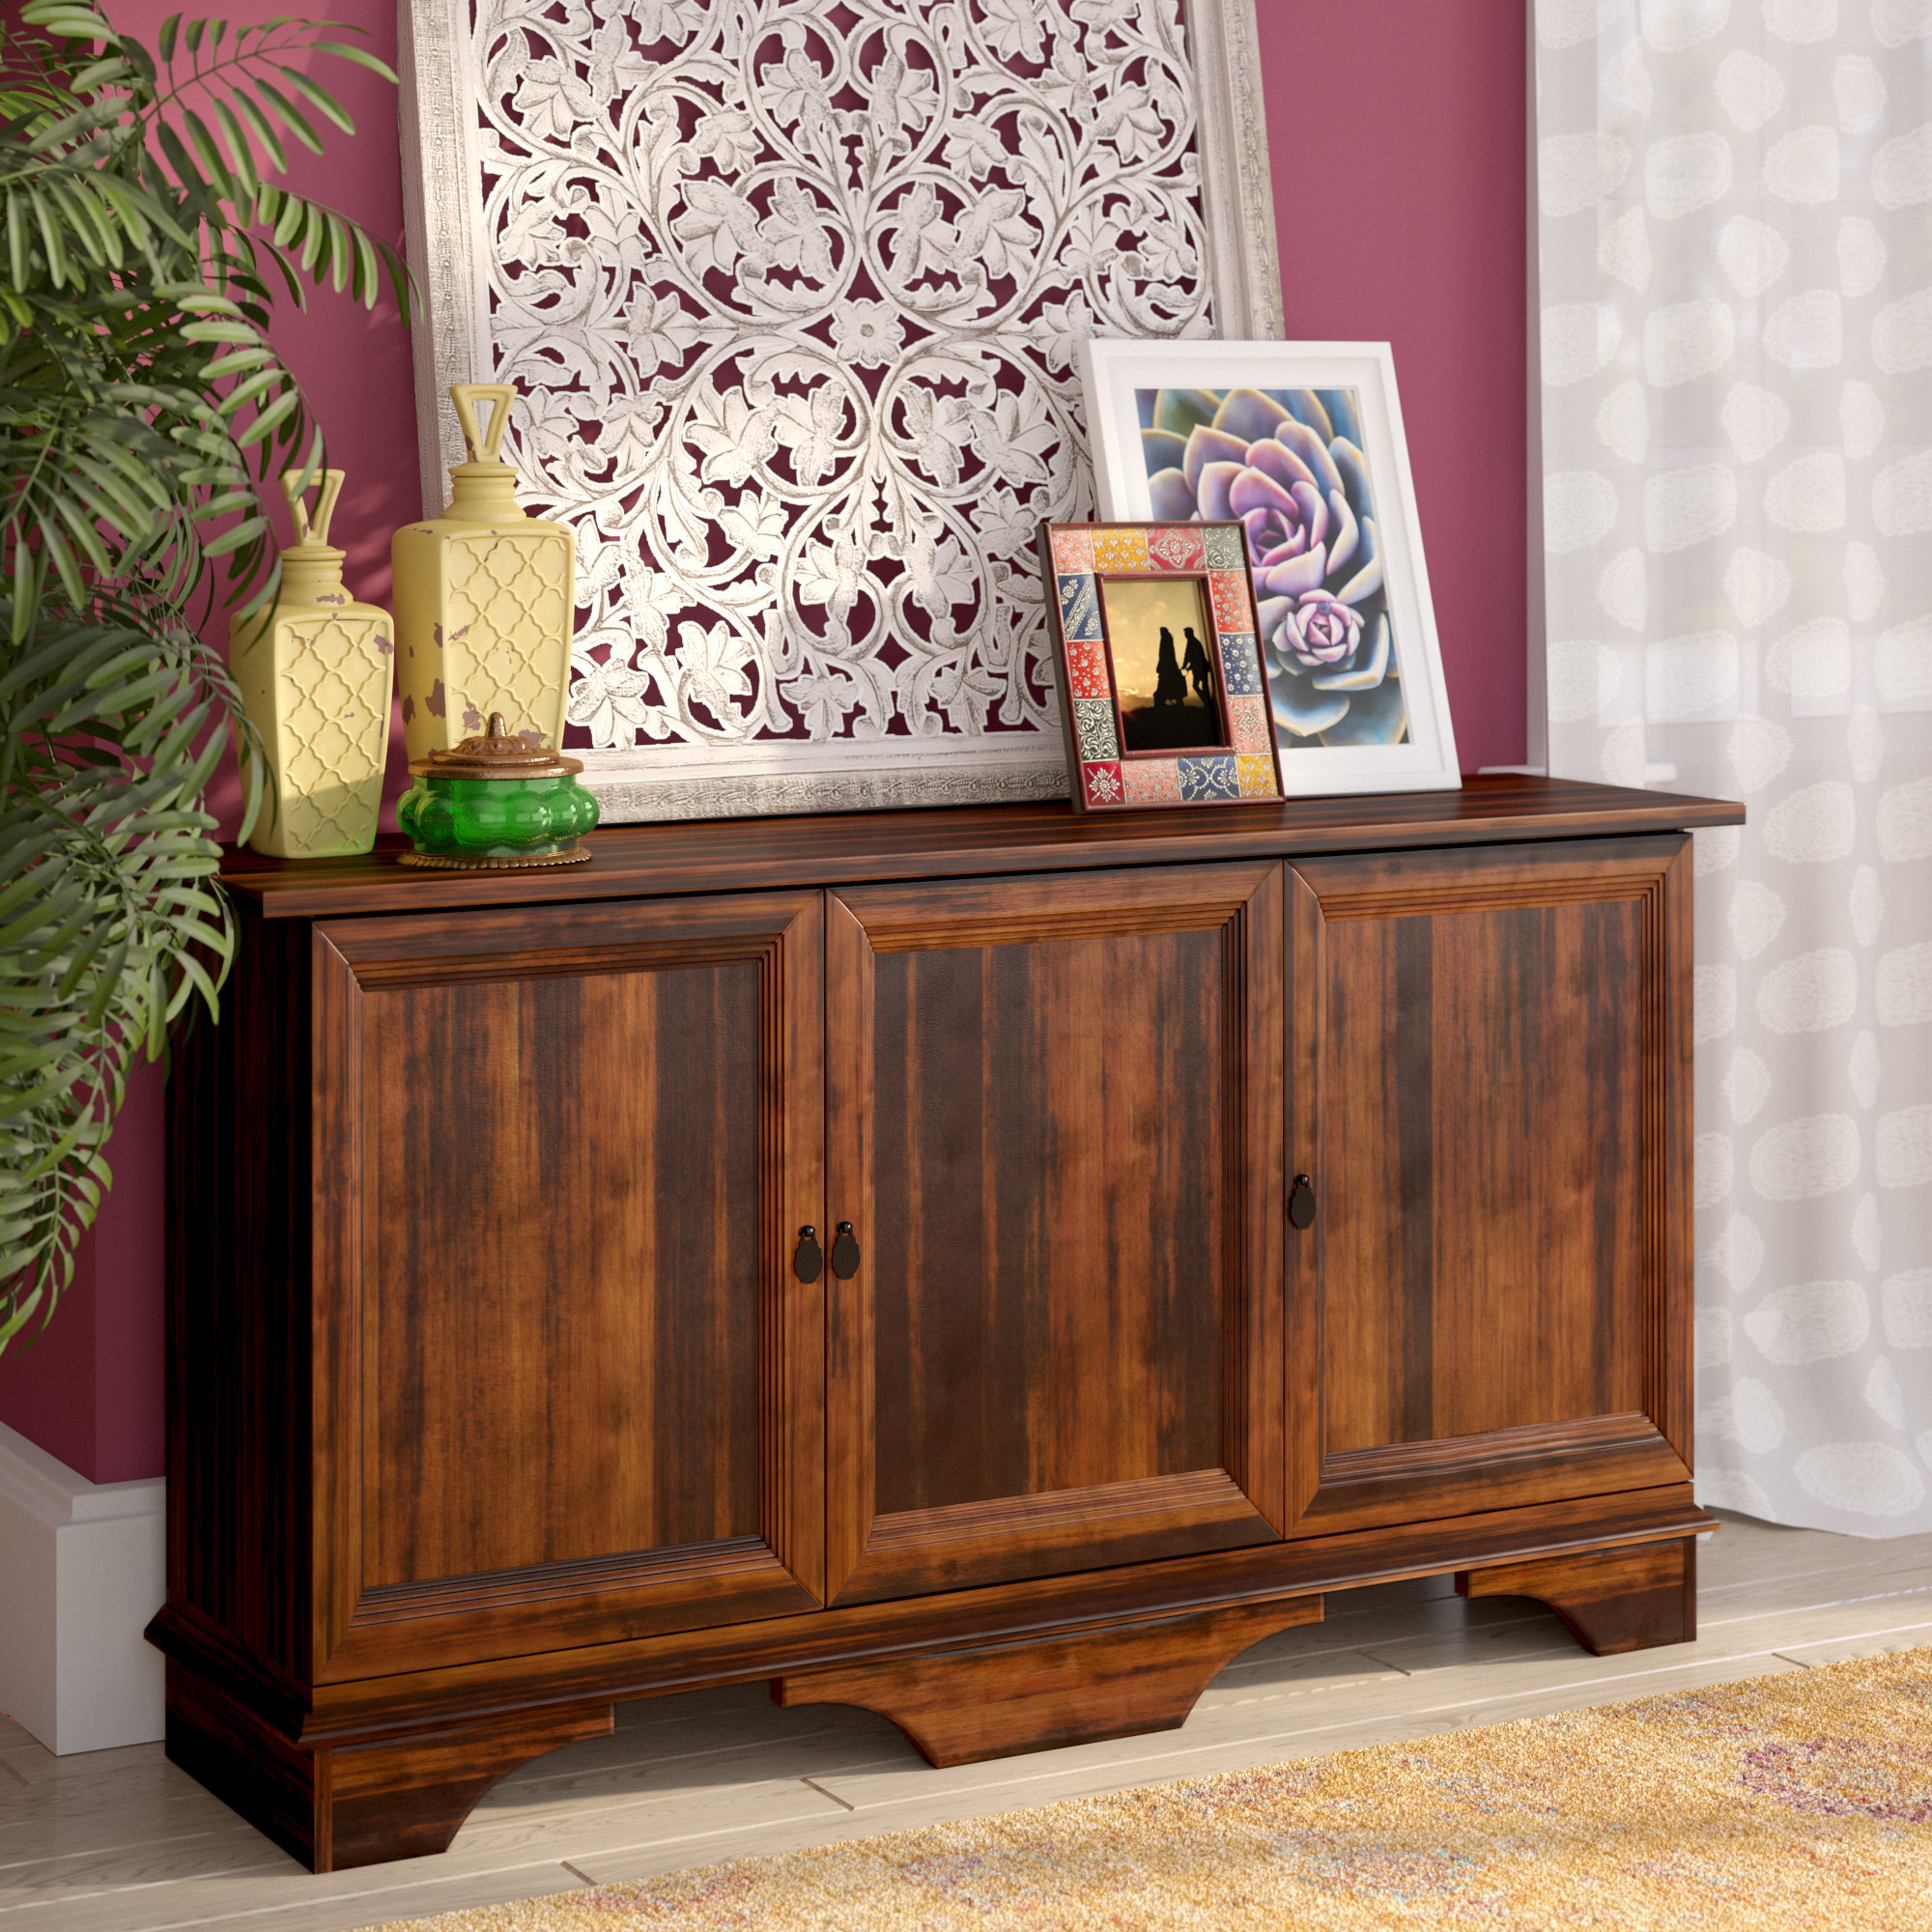 Most Popular Barn Wood Rosendale Carved Accent Ashley Furniture Glass Intended For Kattie 4 Door Cabinets (View 13 of 20)